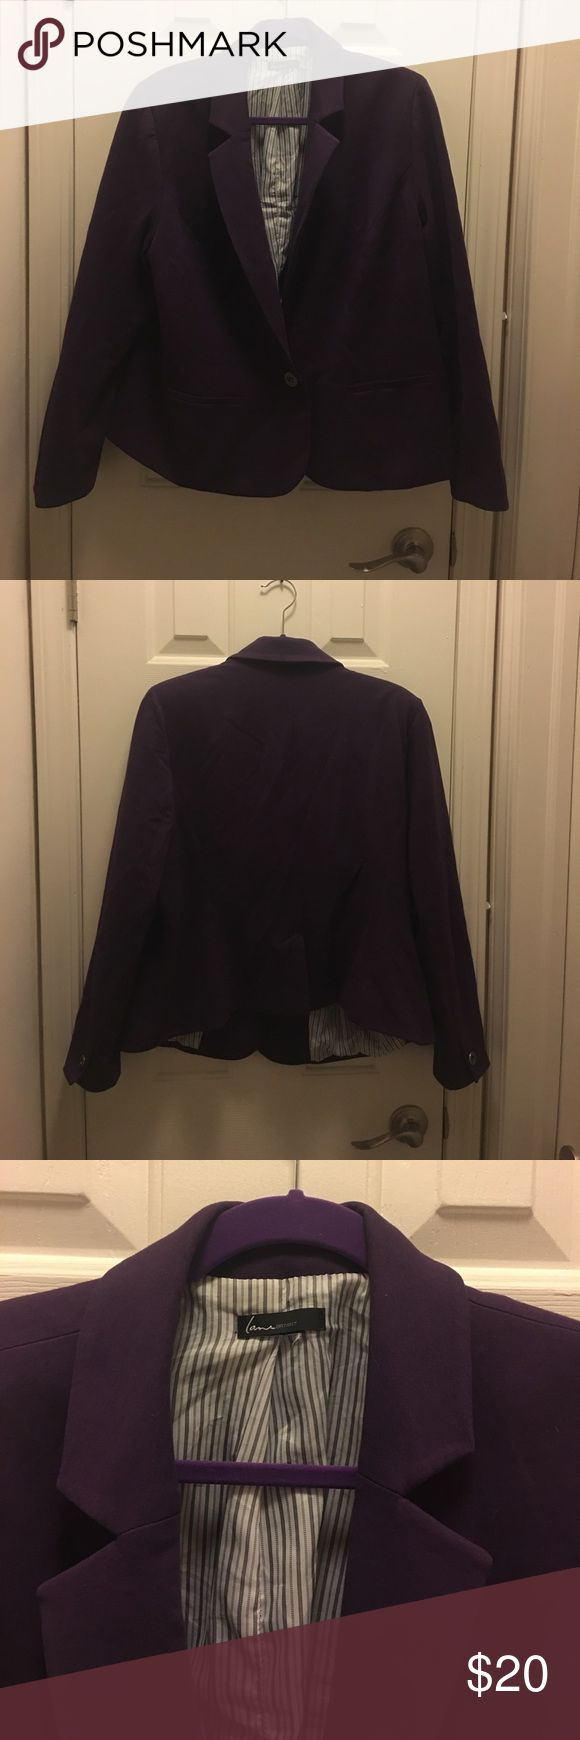 Plus size purple blazer with striped lining This plus sized purple blazer is versatile. It's comfortable terry like fabric allows you to dress it down with a tee and flats or throw over a dress to dress it up for a presentation. Lane Bryant Jackets & Coats Blazers